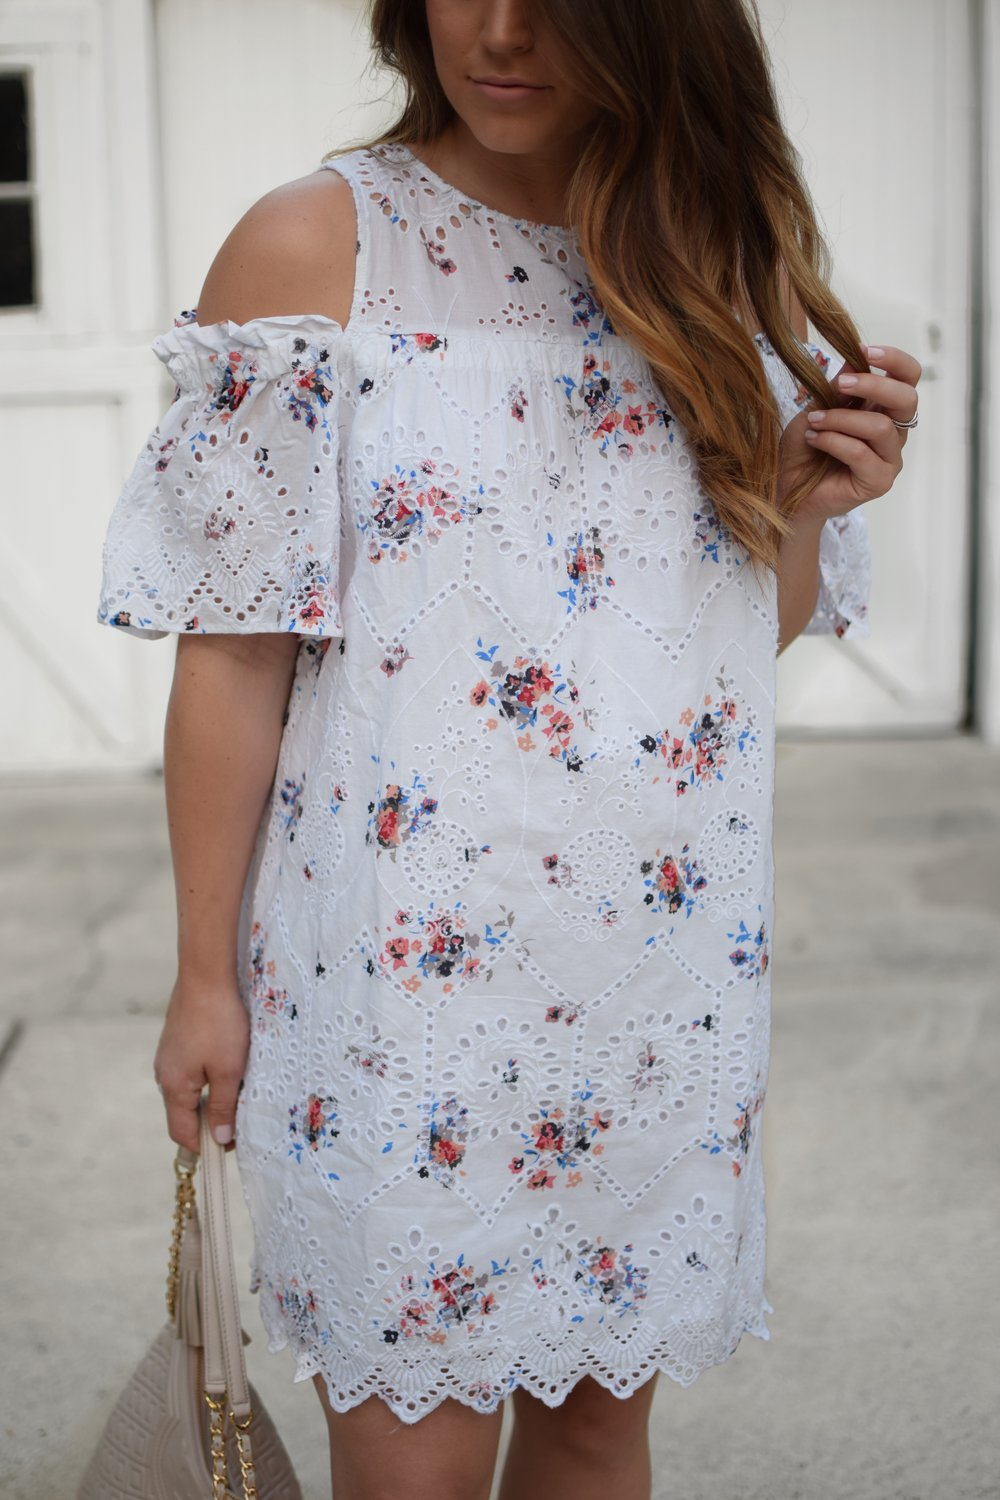 loft eyelet & floral print dress / summer dress / summer outfit idea